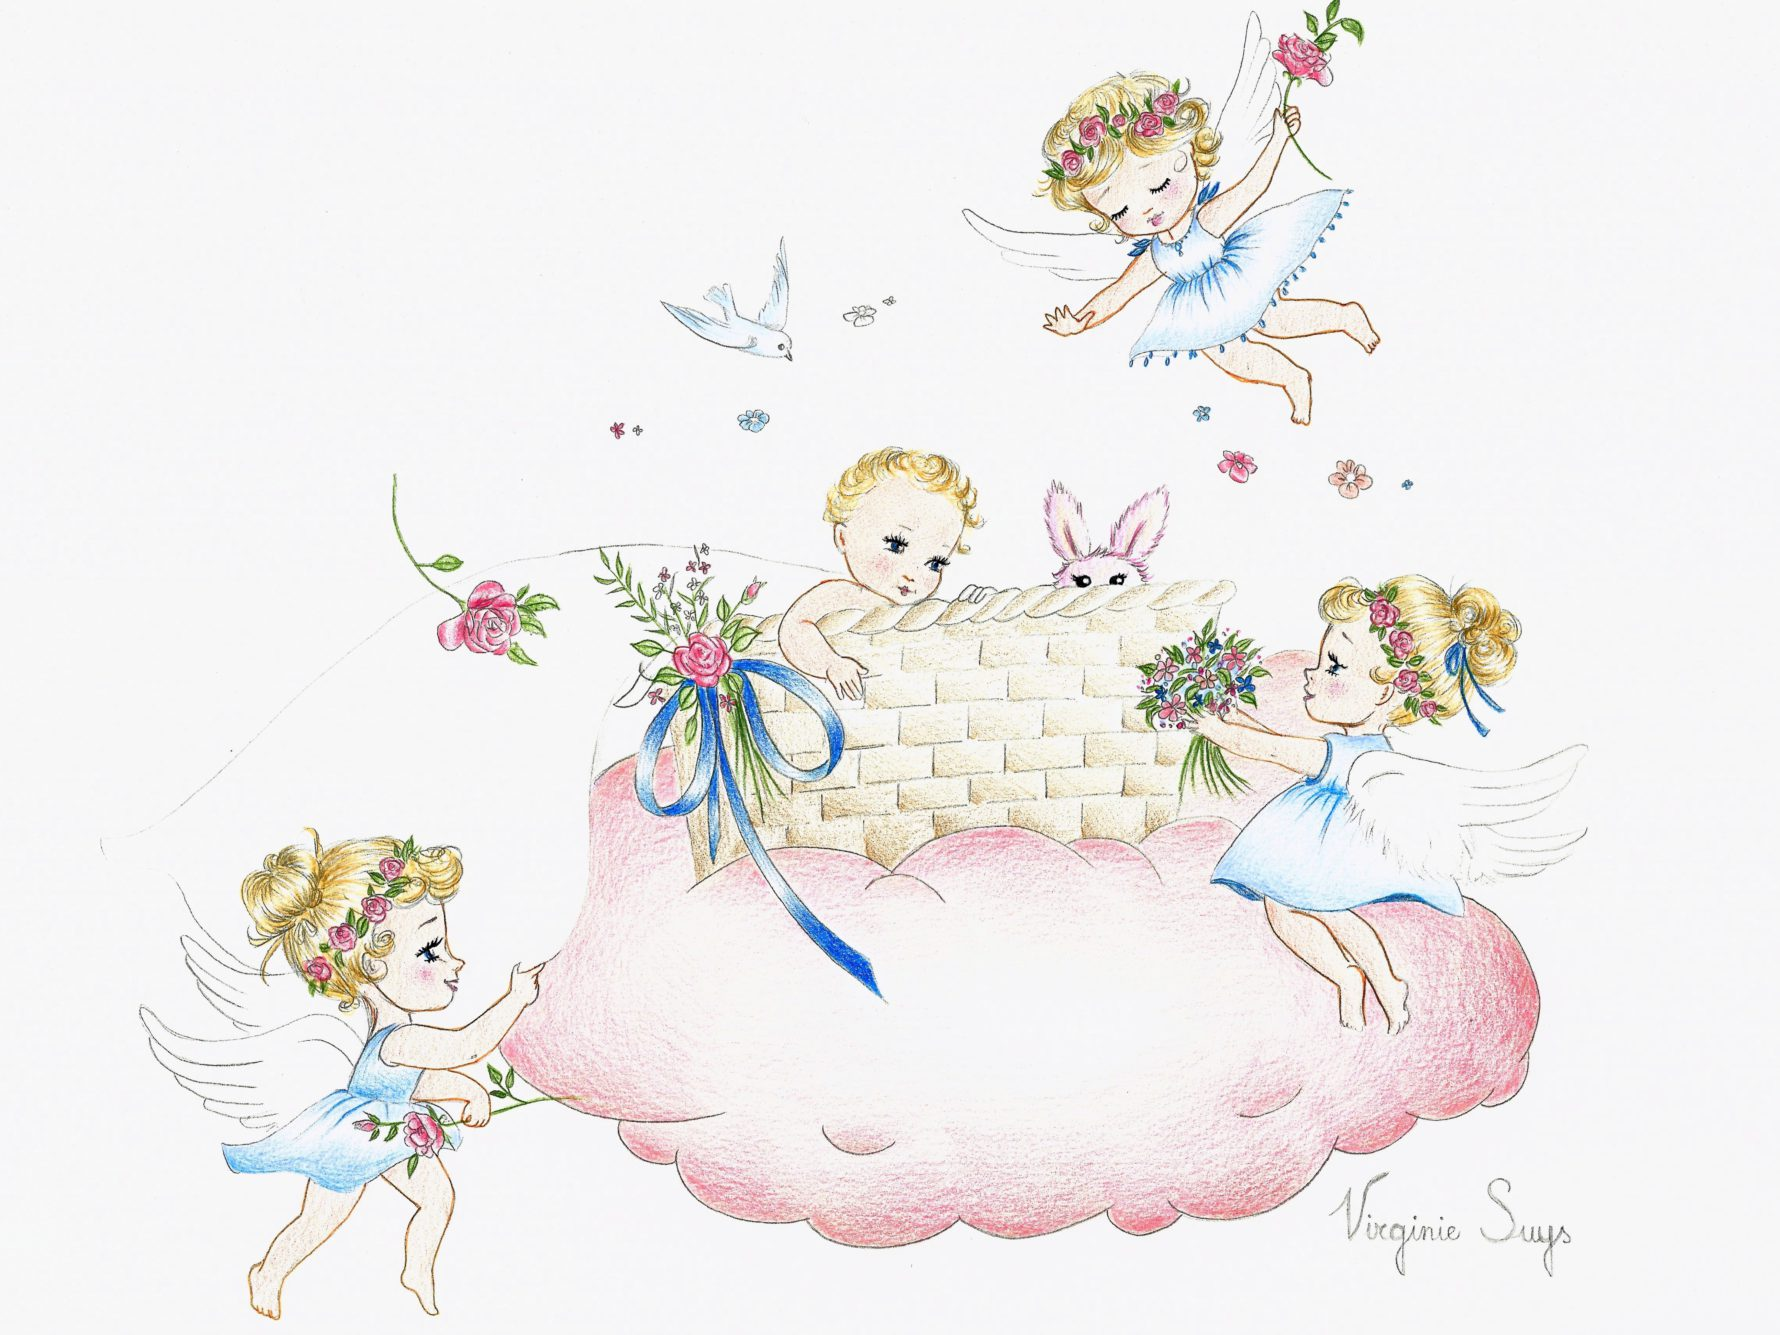 Virginie Suys Angels in heaven pink cloud illustration